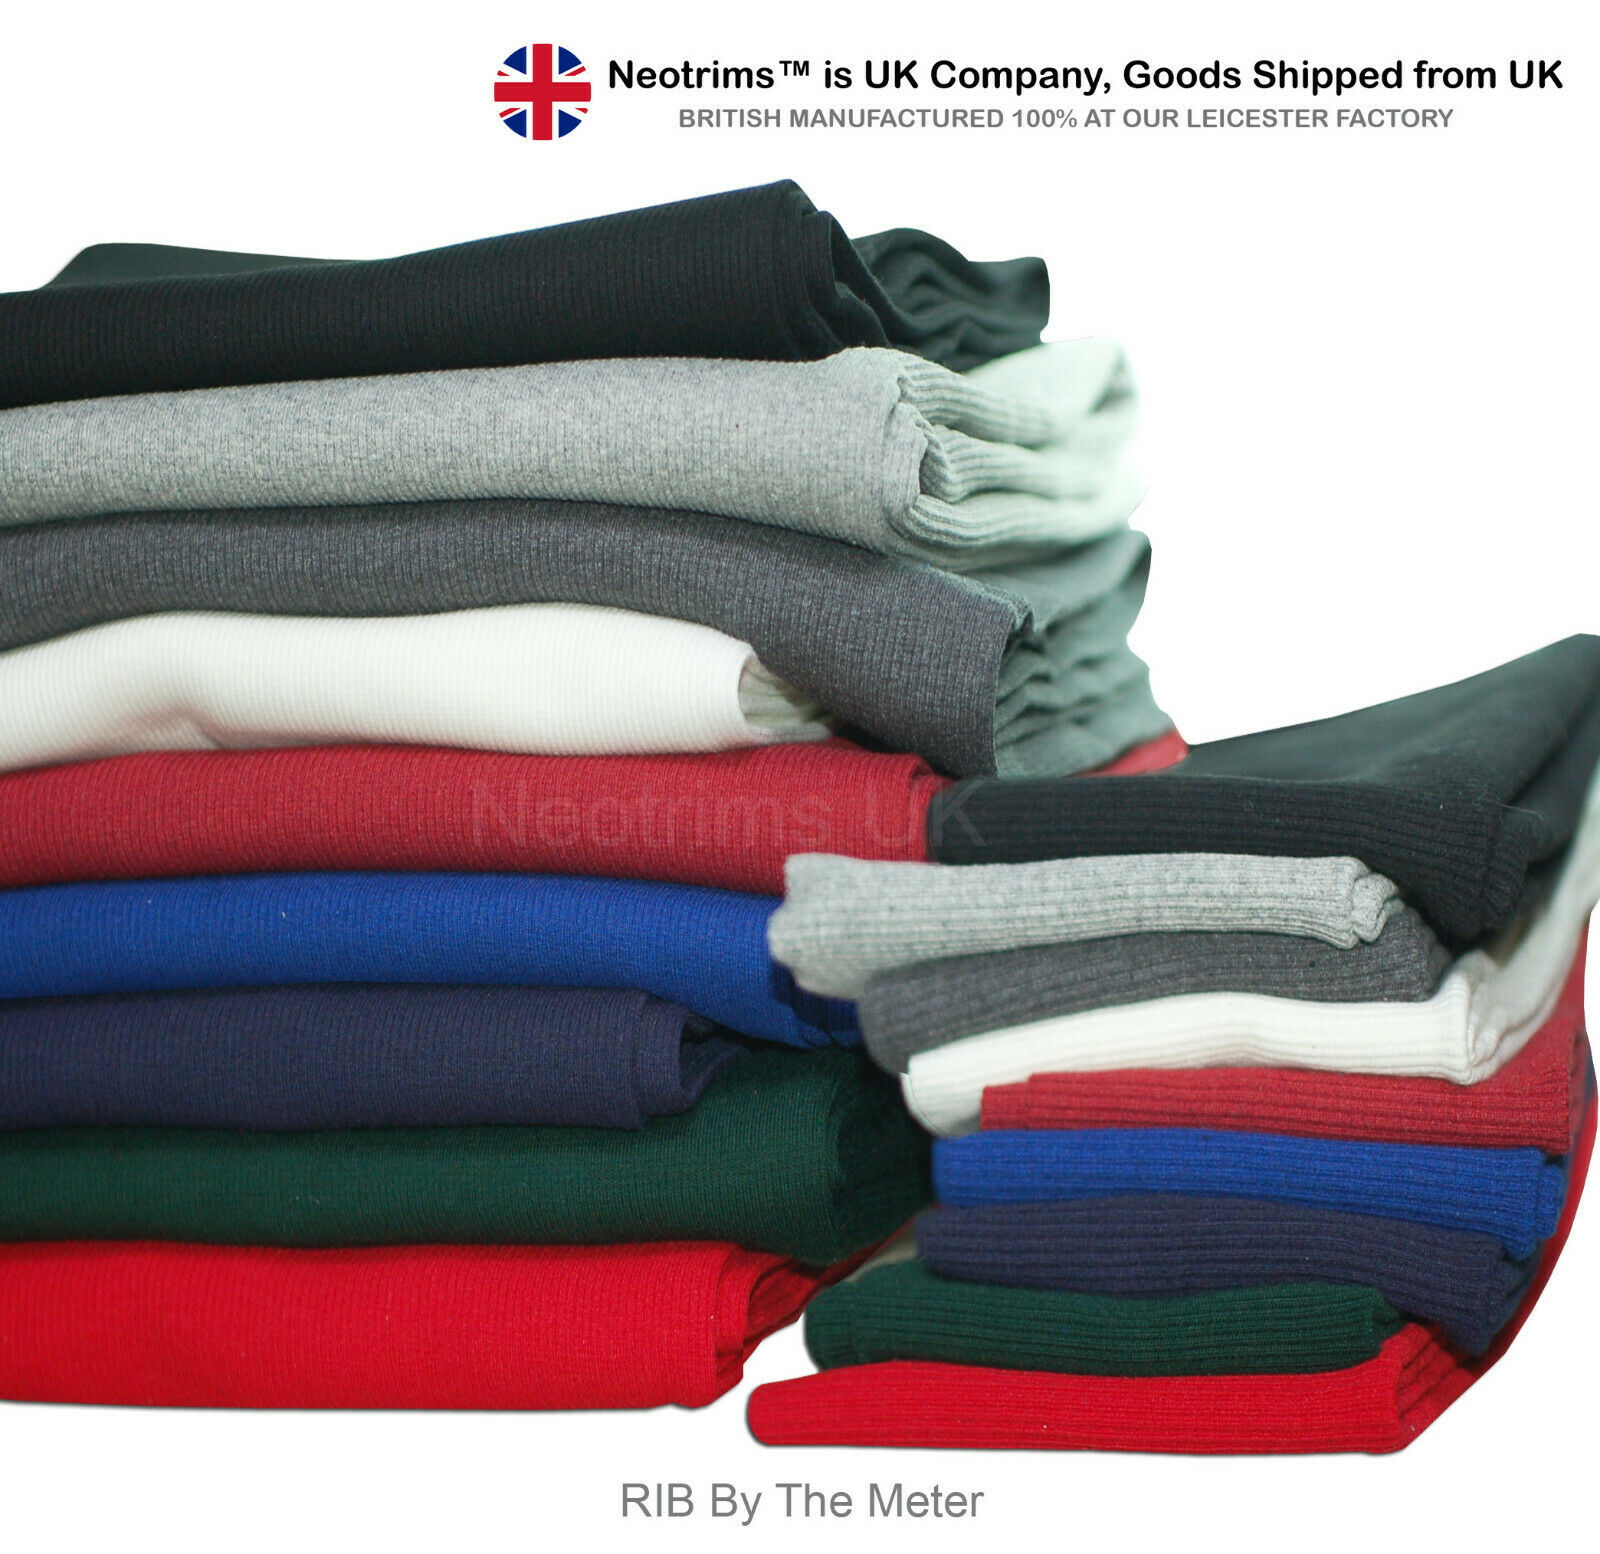 Chunky Resilient Durable Knit Rib Fabric Neotrims Stretch Lycra Ribbed Fabric